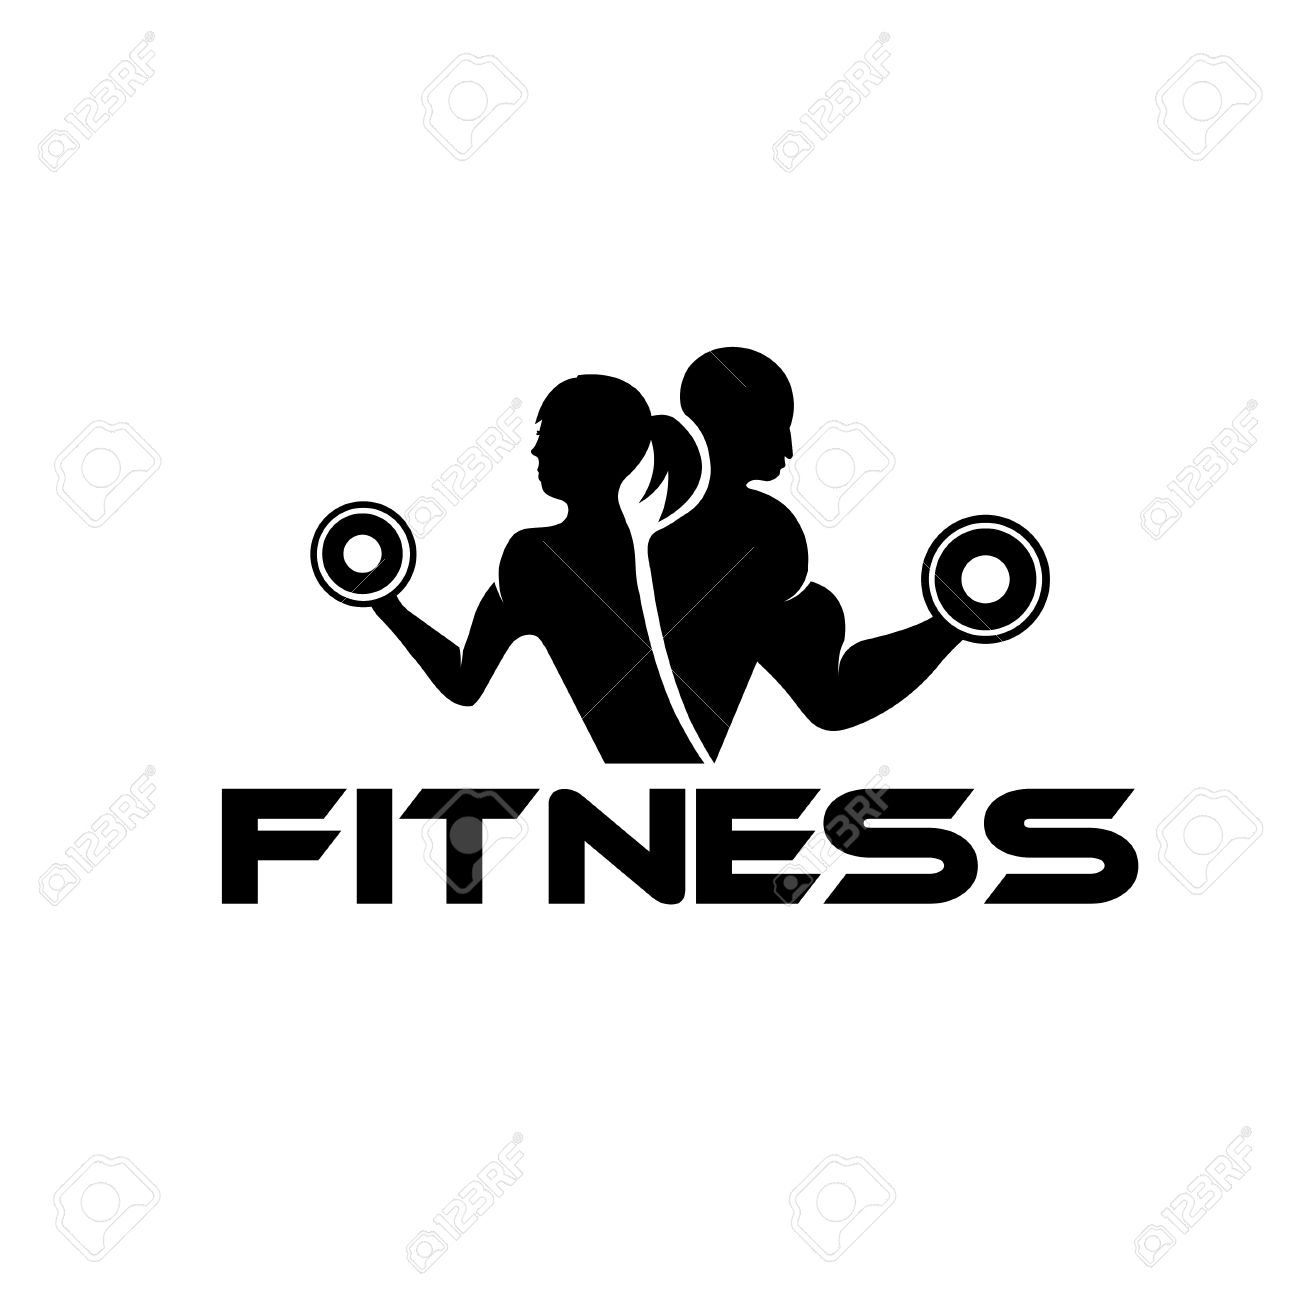 Free black and white fitness clipart clipground